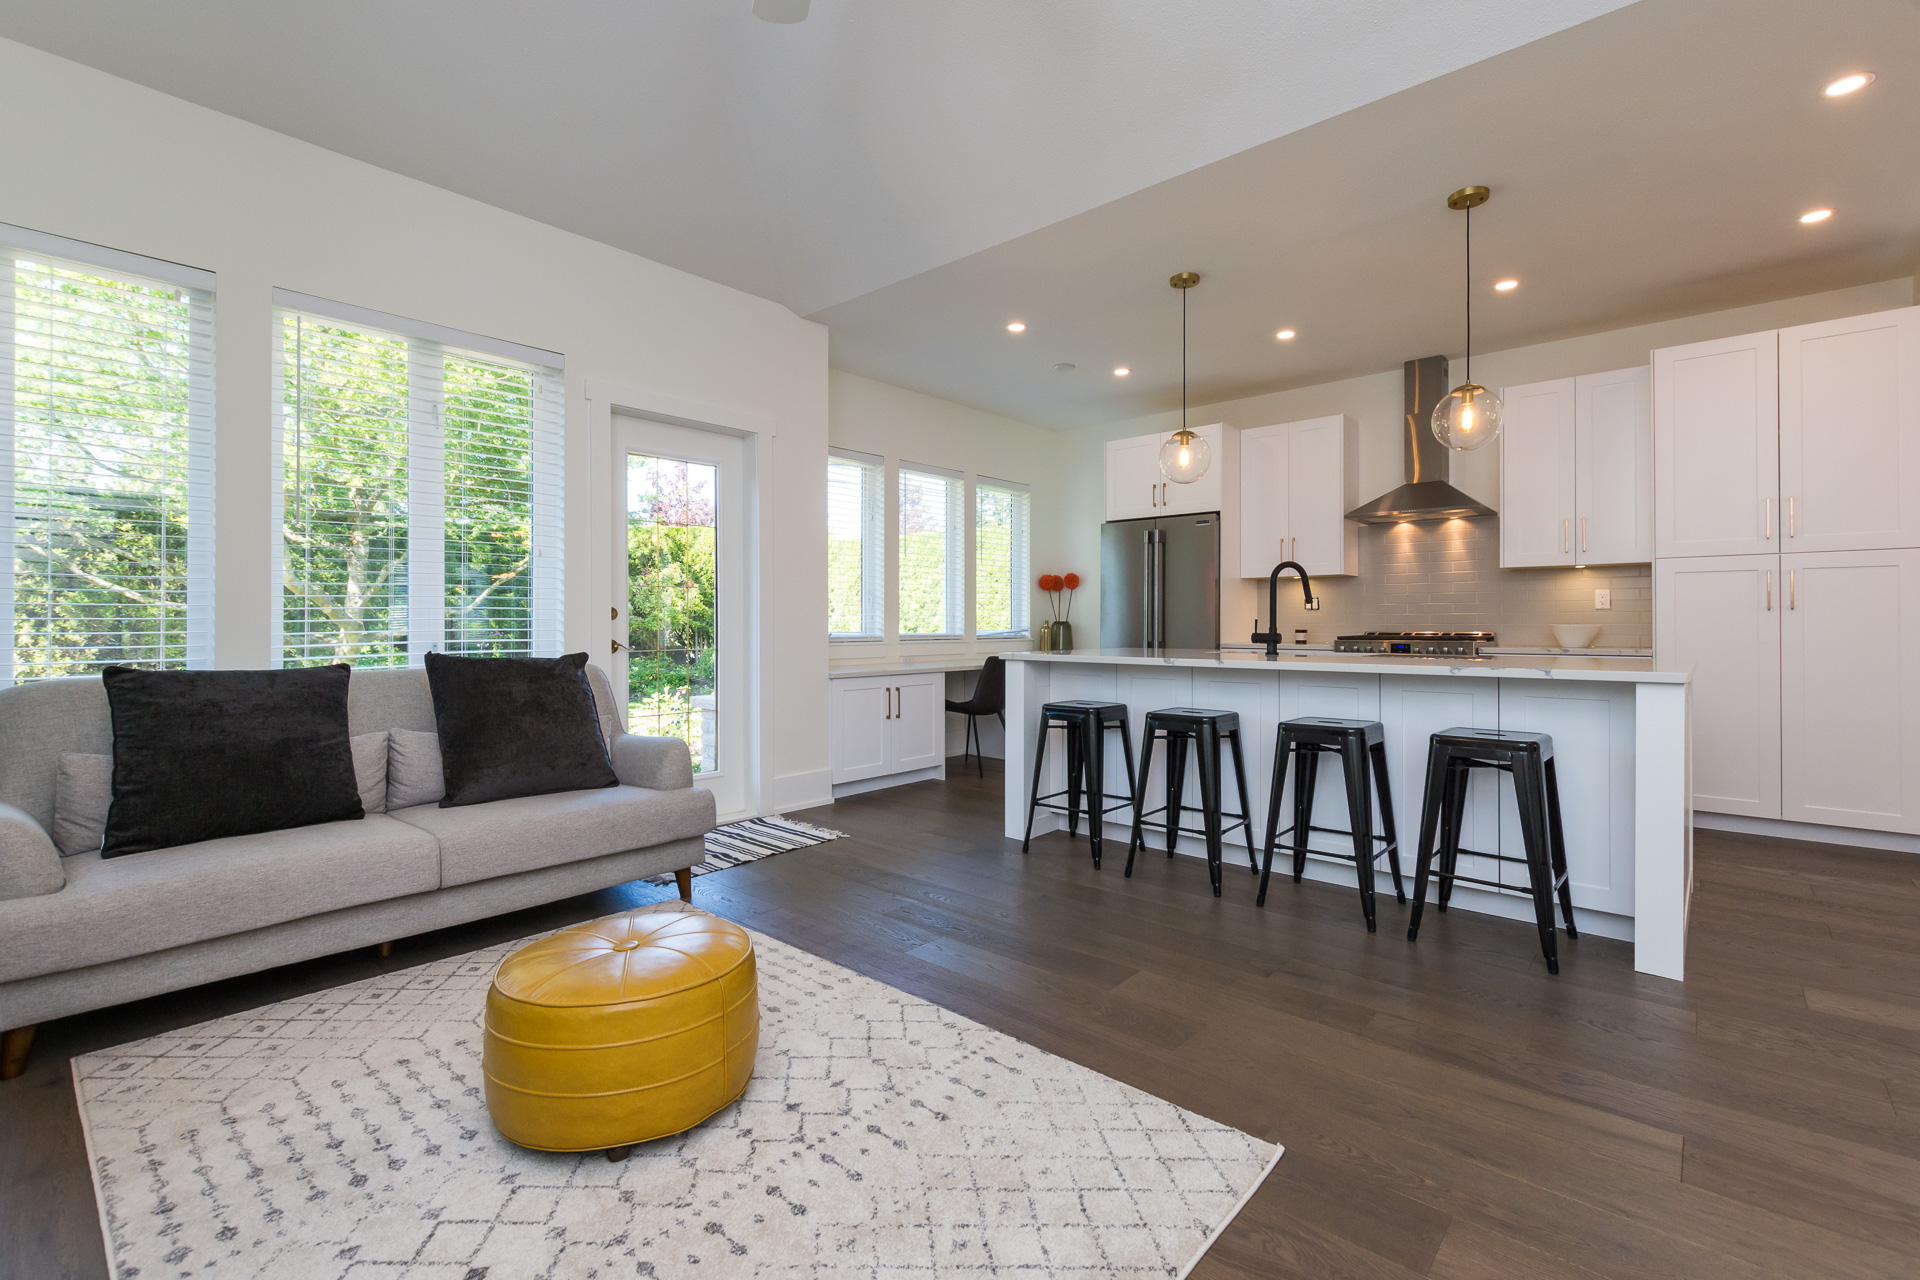 South Surrey/White Rock Townhouse for sale: Meridian Park Estates 2 bedroom  Stainless Steel Appliances, Marble Countertop, Tile Backsplash, Rain Shower, Glass Shower, Marble Counters, Hardwood Floors, Dark Hardwood Floors 1,607 sq.ft. (Listed 2019-01-11)